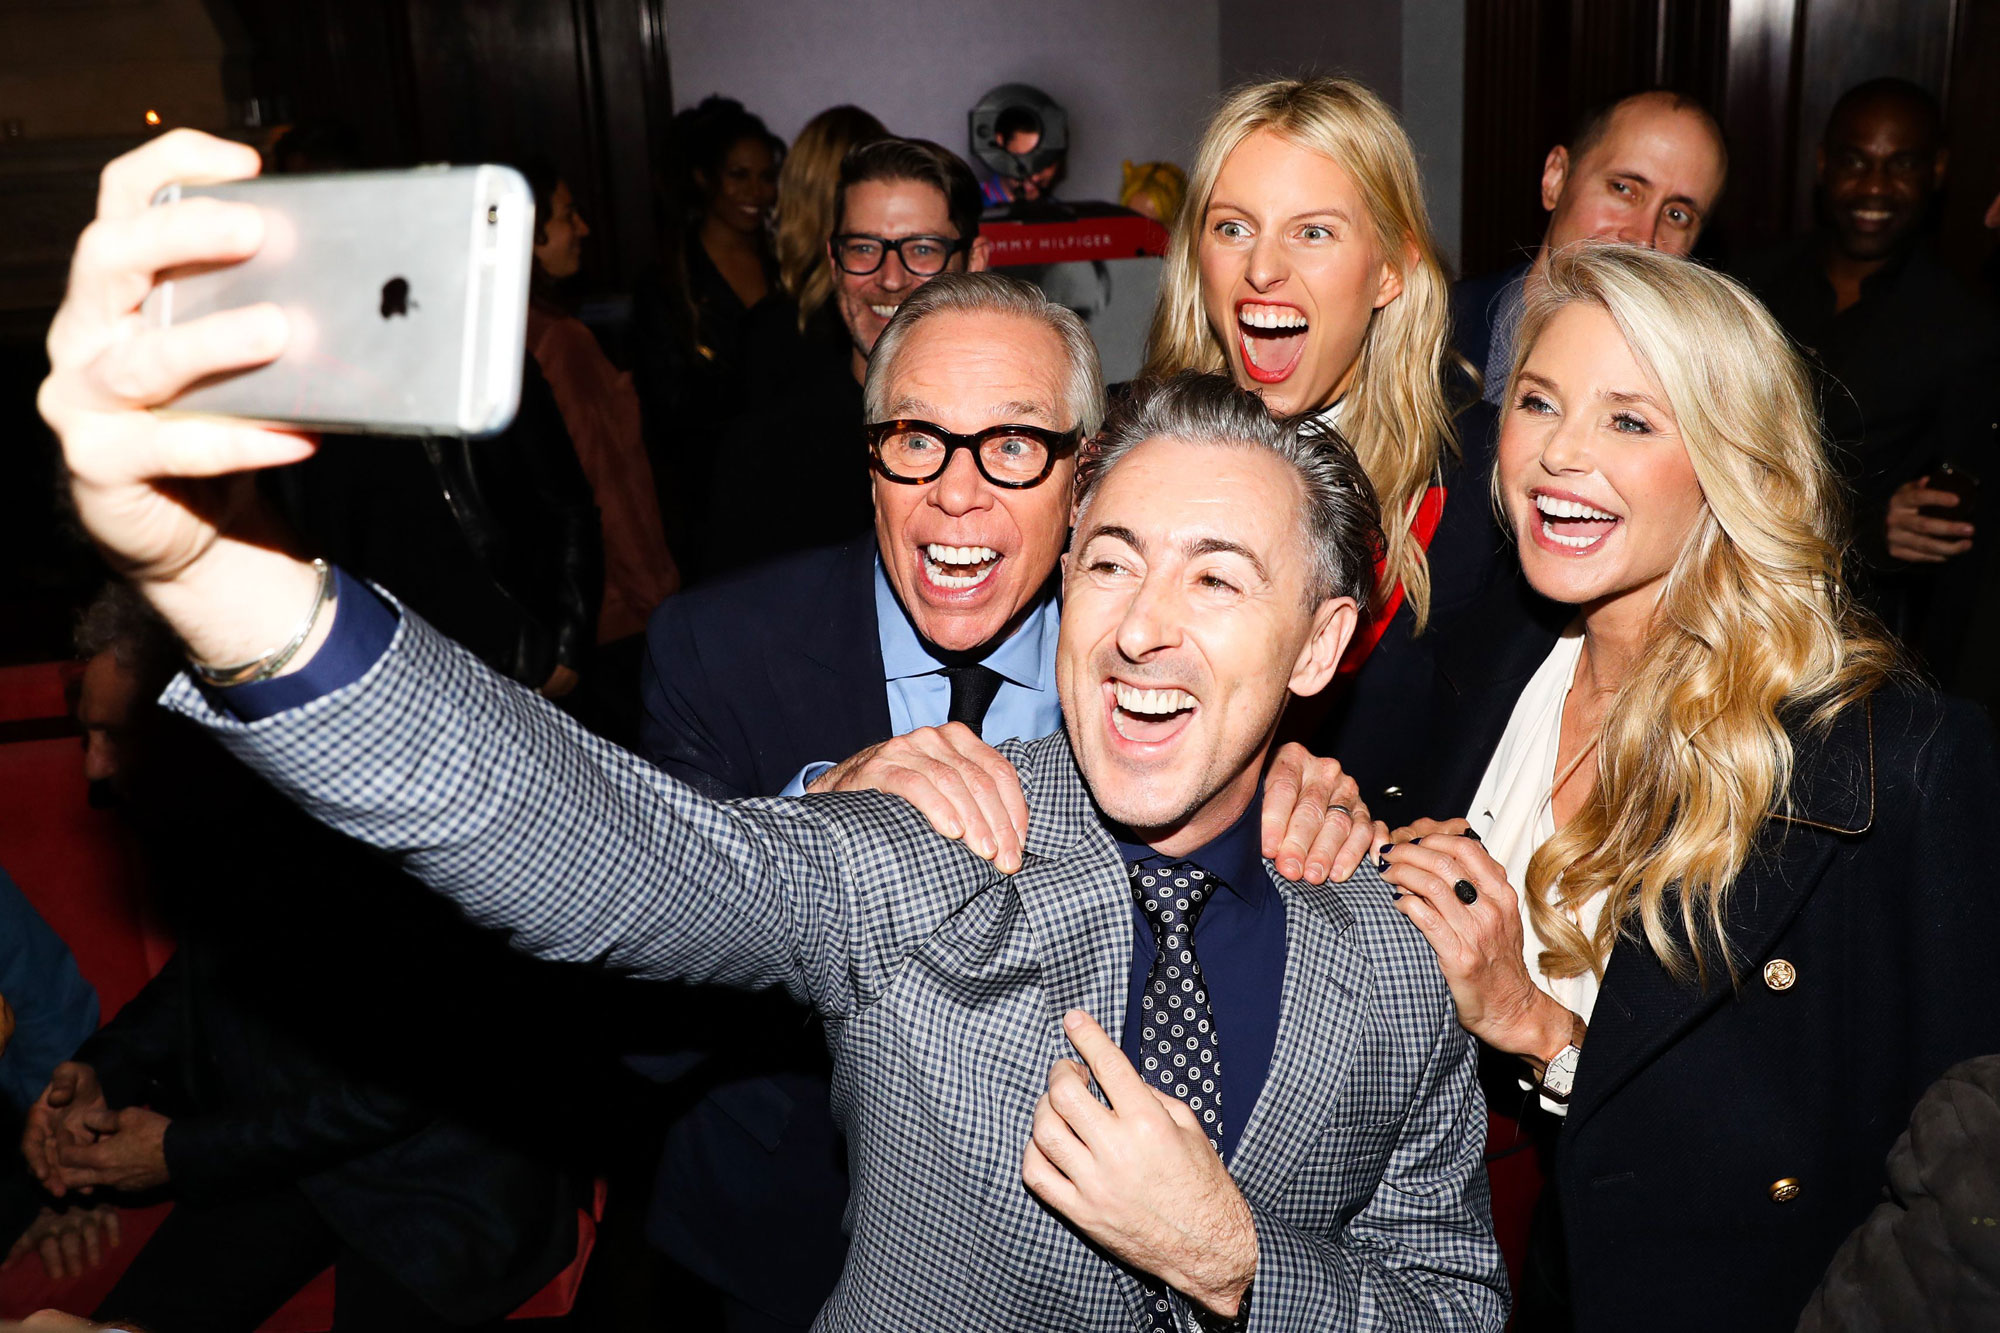 Tommy Hilfiger 'American Dreamer' book launch Party, New York, USA - 01 Nov 2016